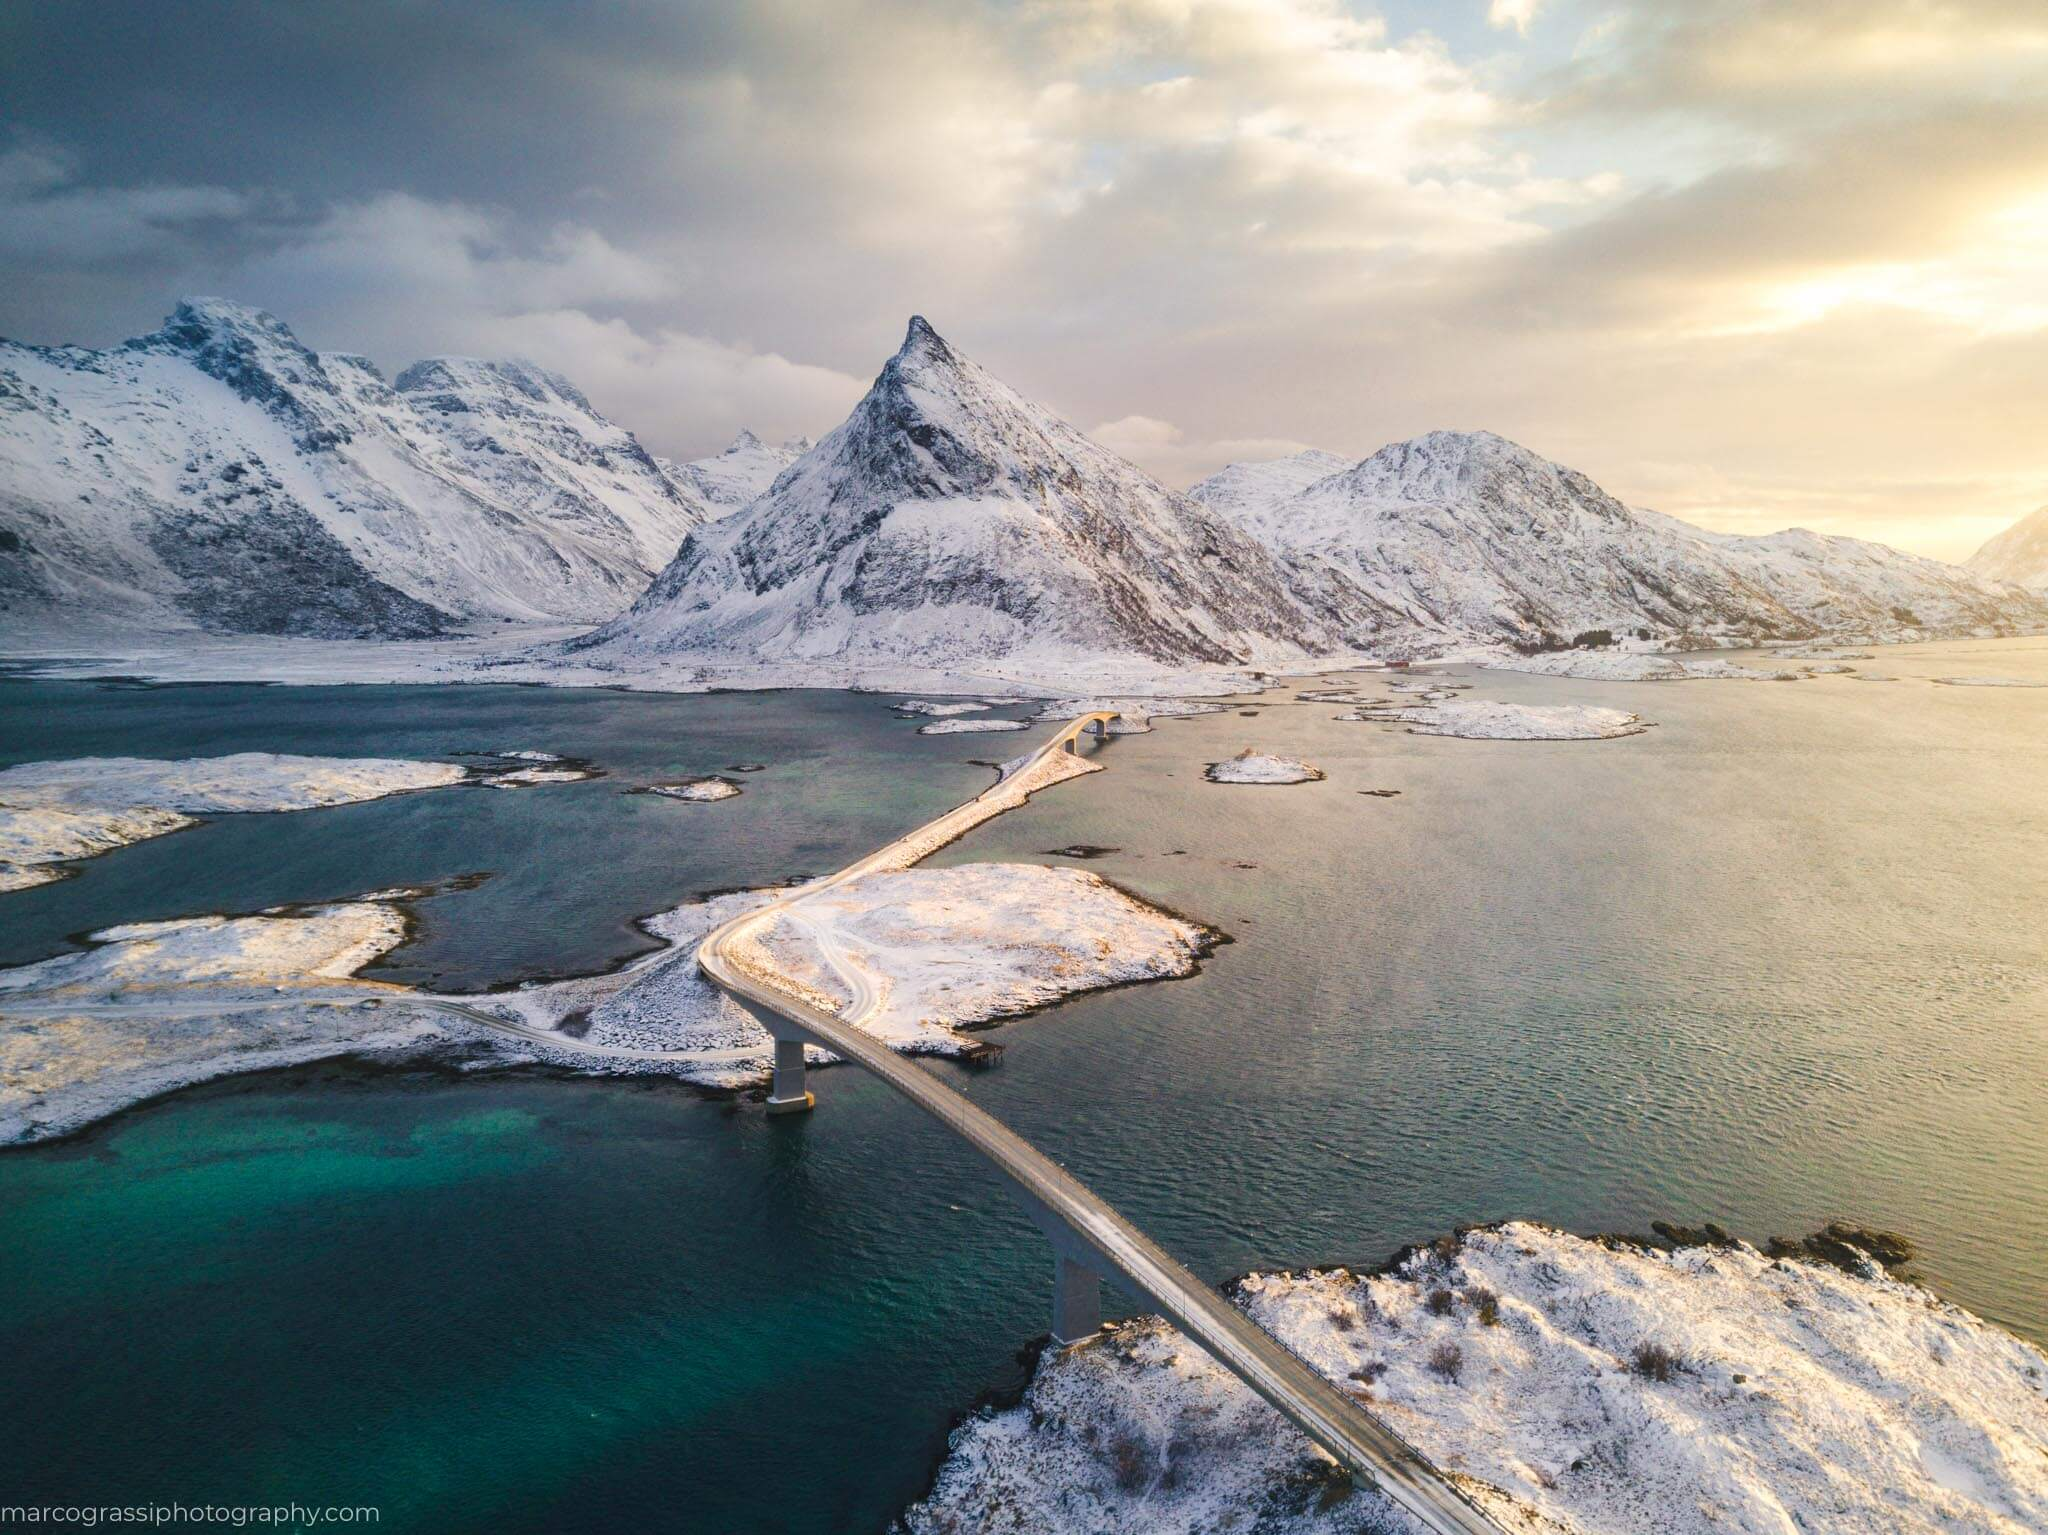 Flying the drone above bridges in Lofted Islands, Norway